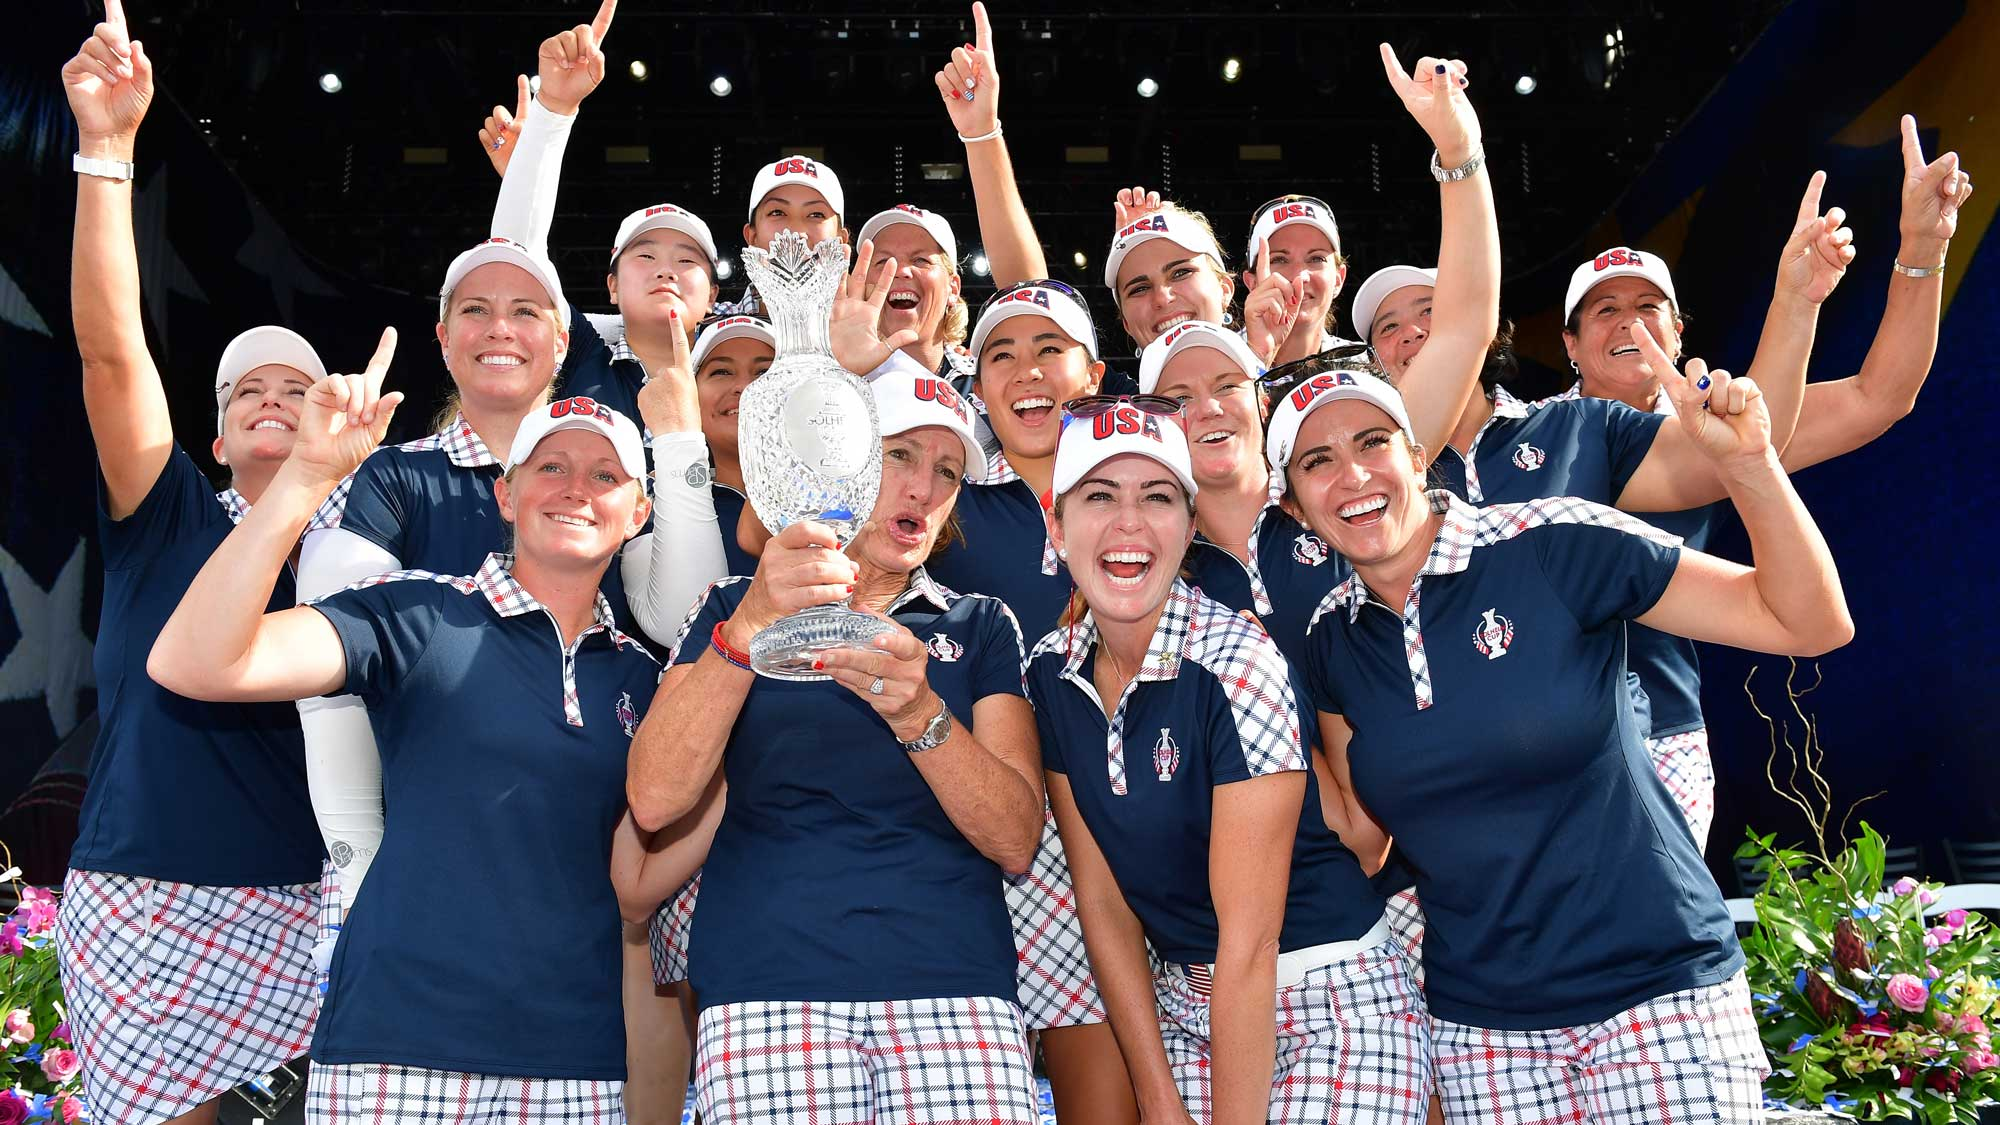 USA WIns 2017 Solheim Cup Over Europe